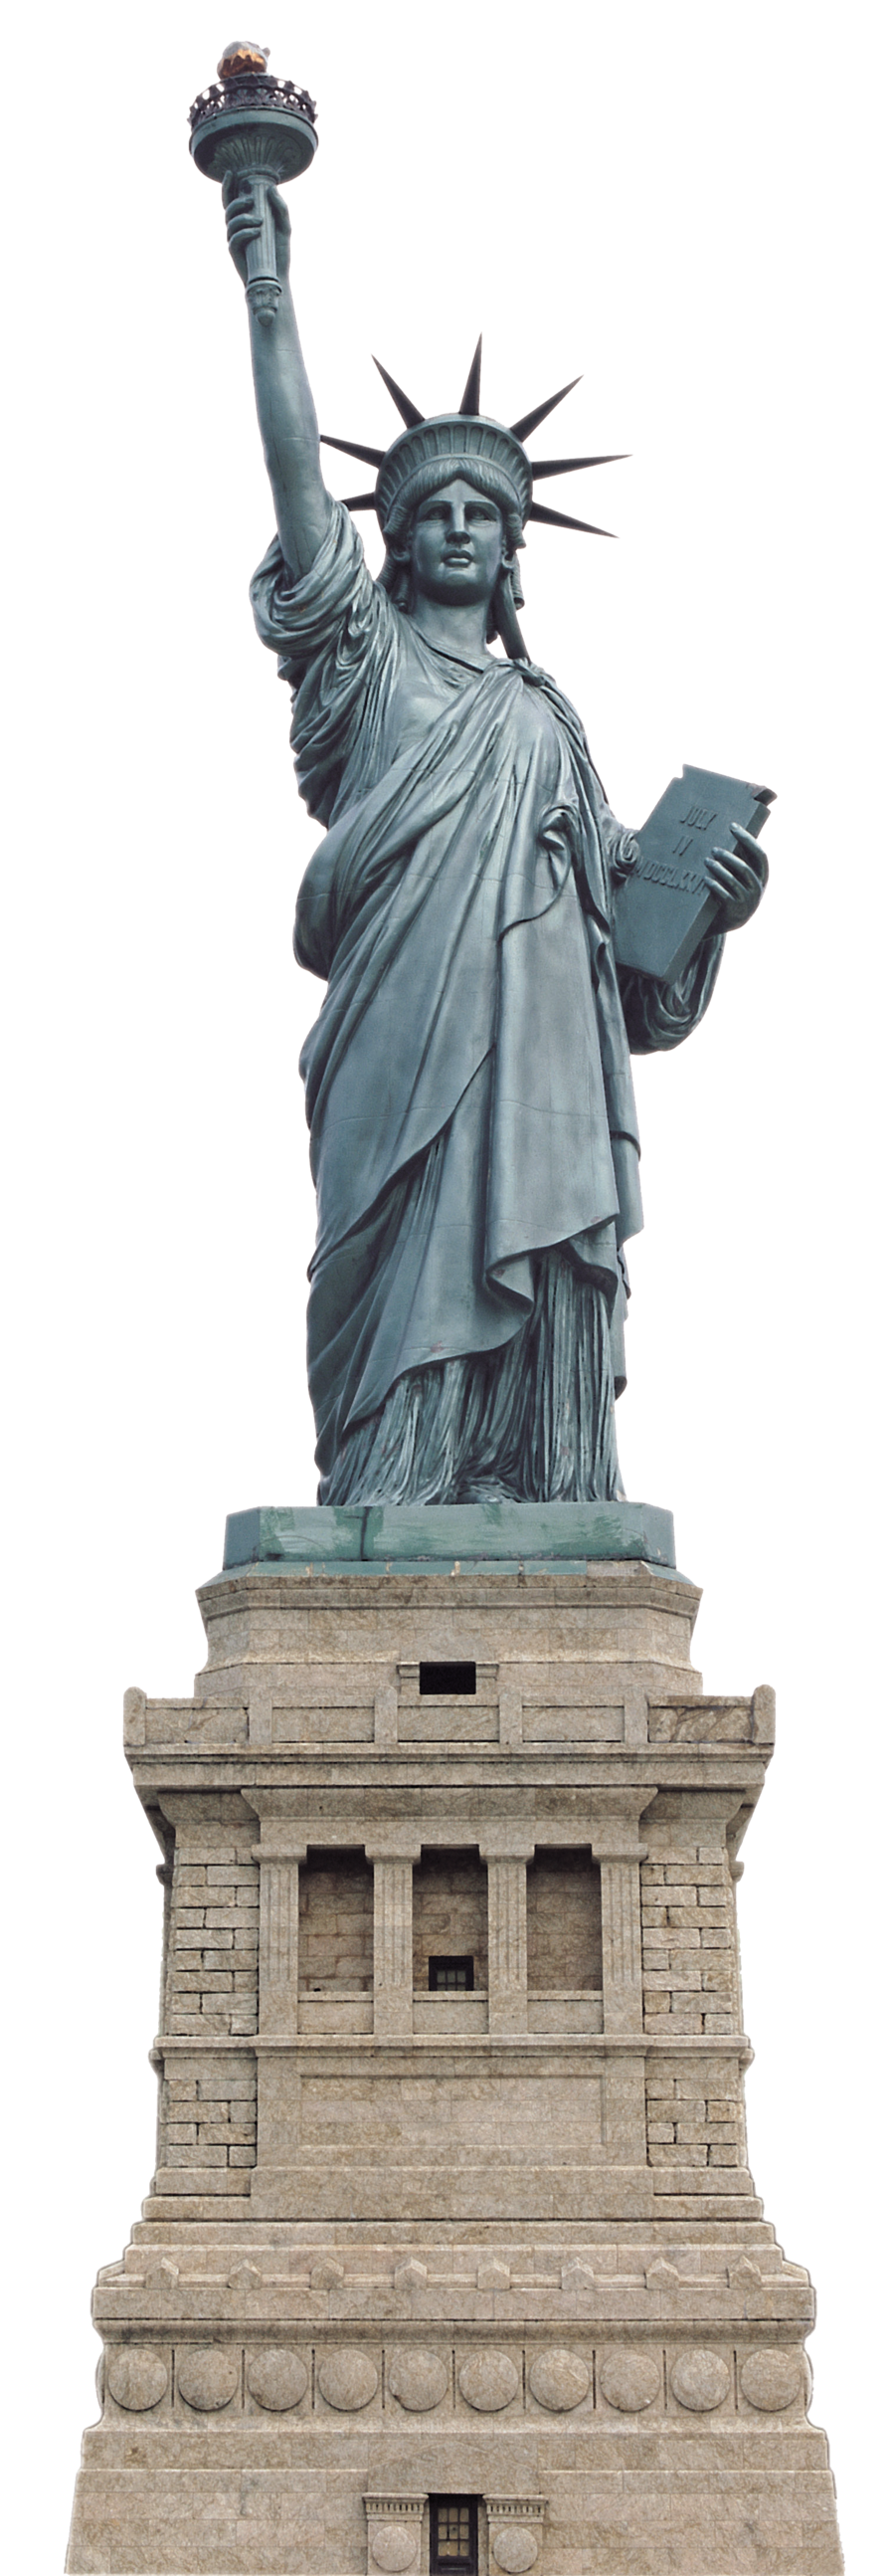 Statue of liberty clipart cardboard. Png transparent images all